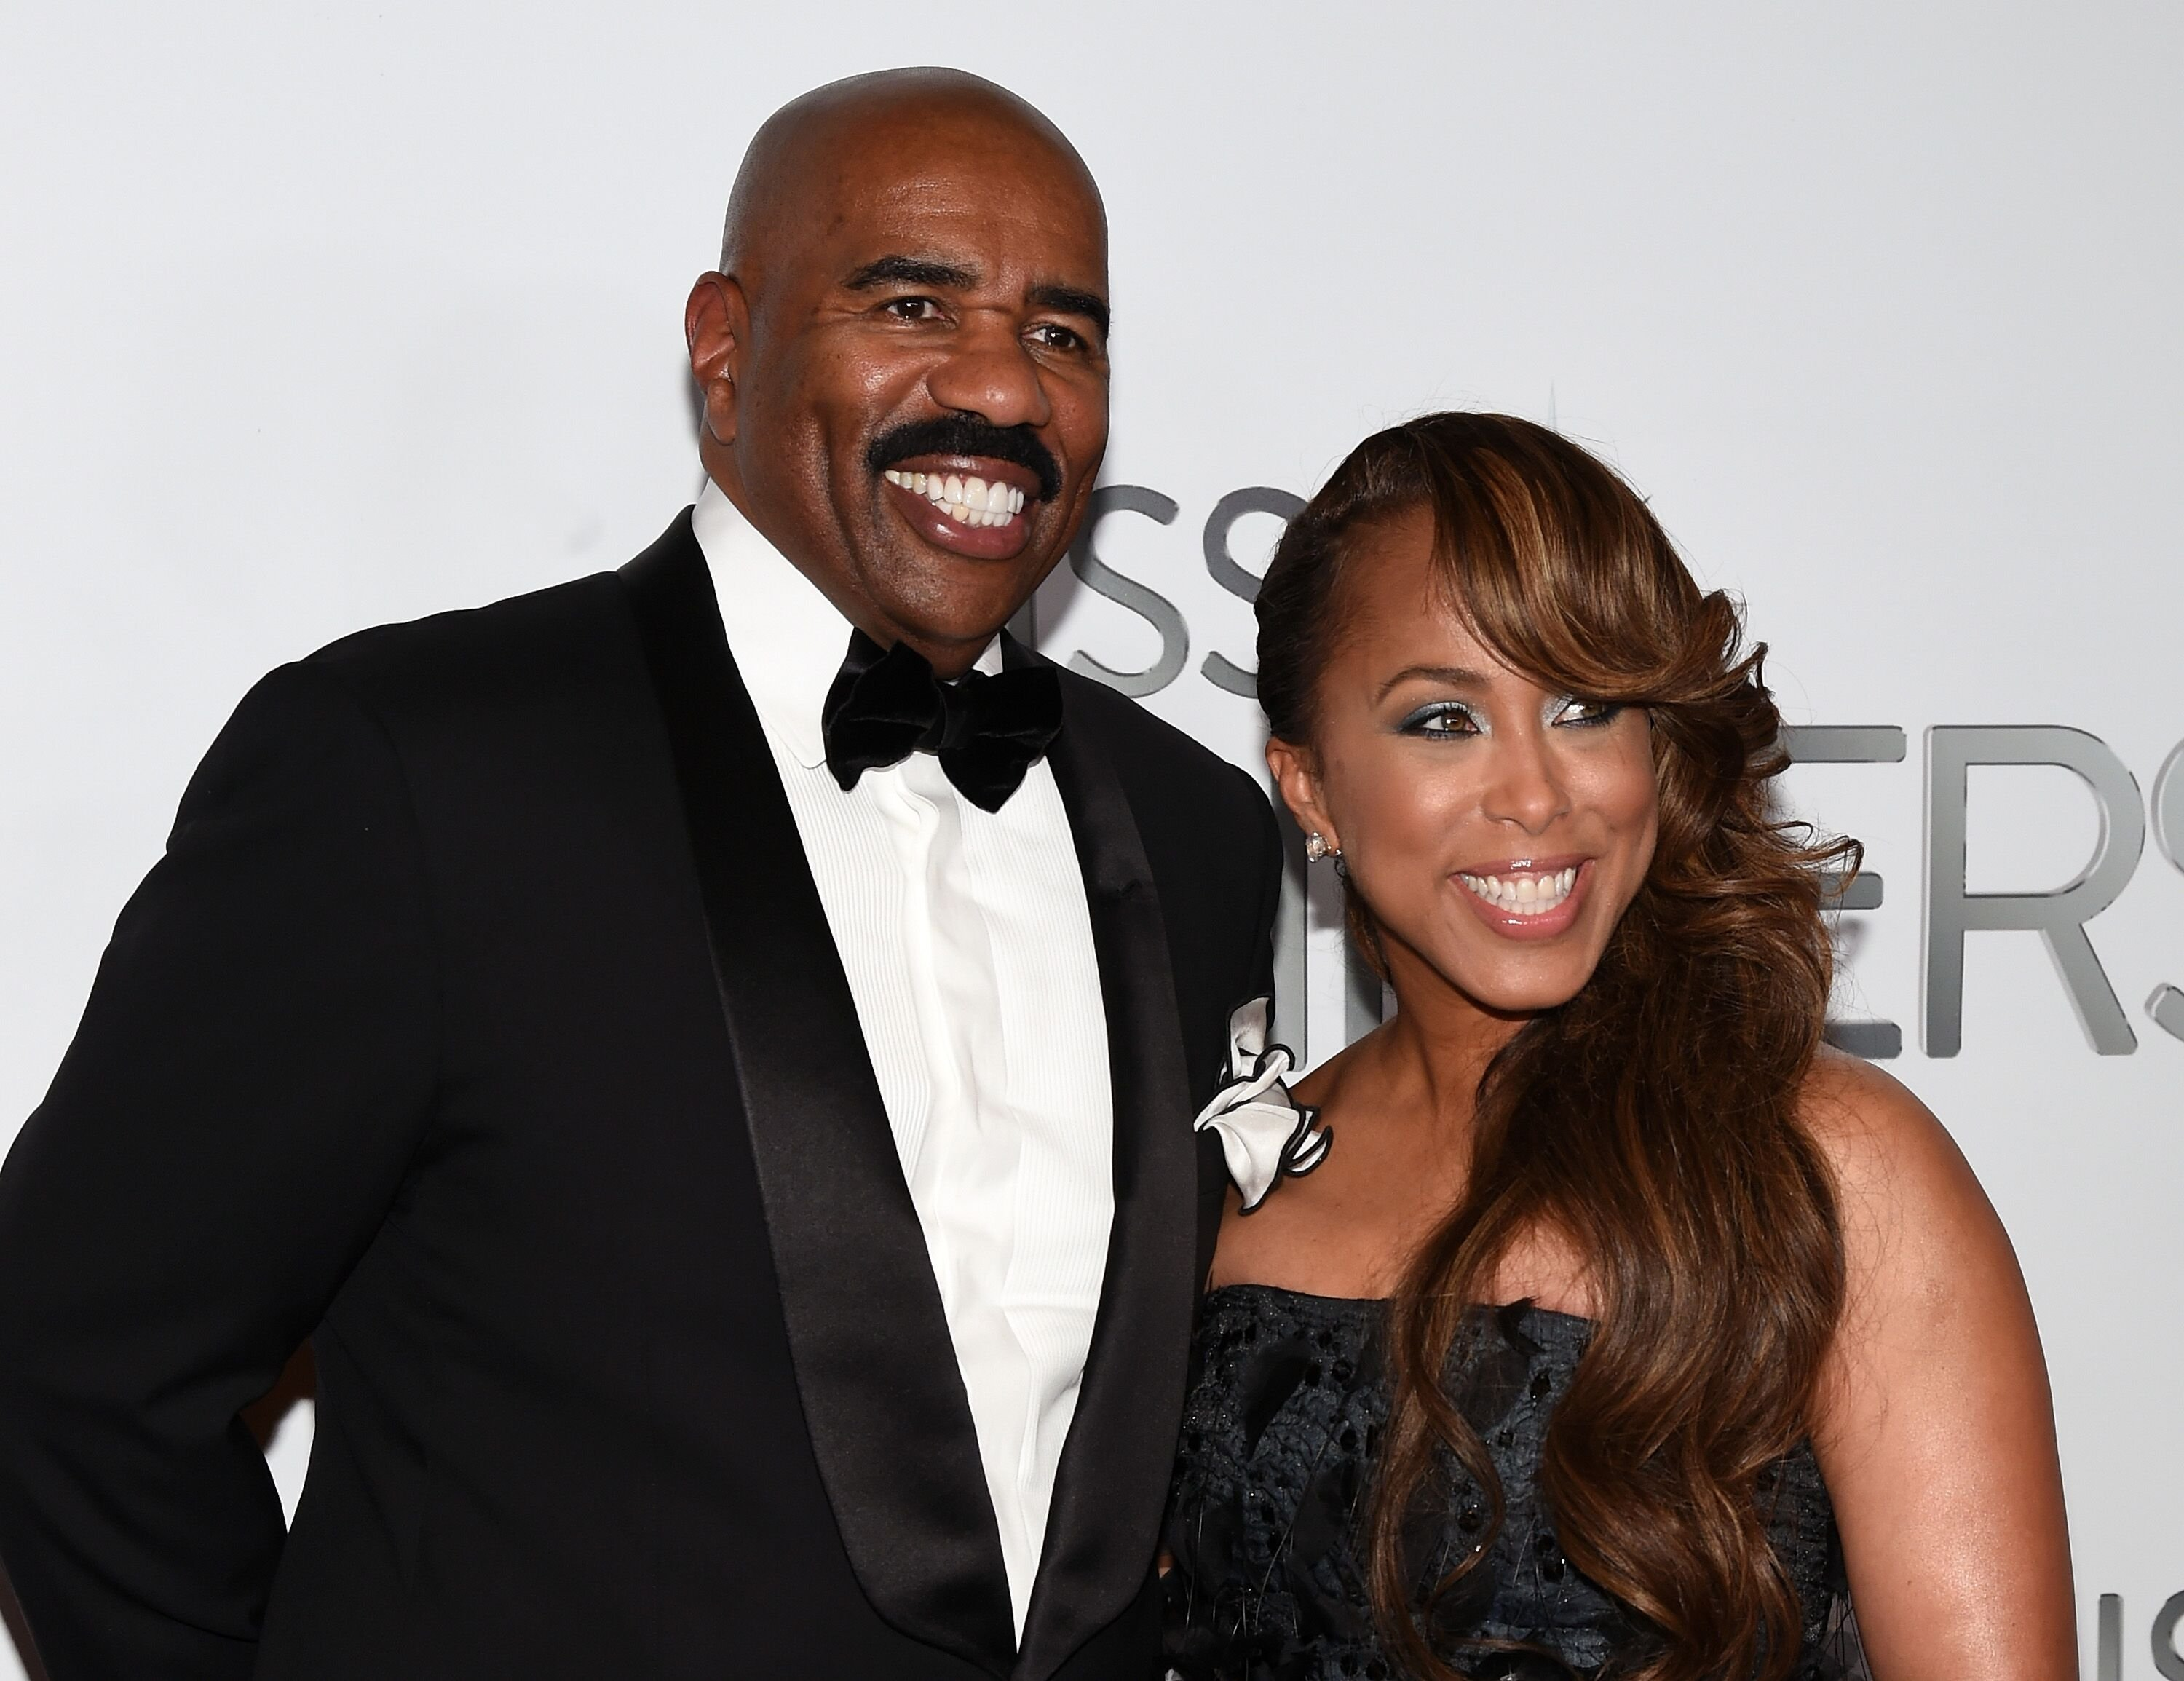 Steve and Marjorie  Harvey at the 2015 Miss Universe Pageant in Las Vegas | Source: Getty Images